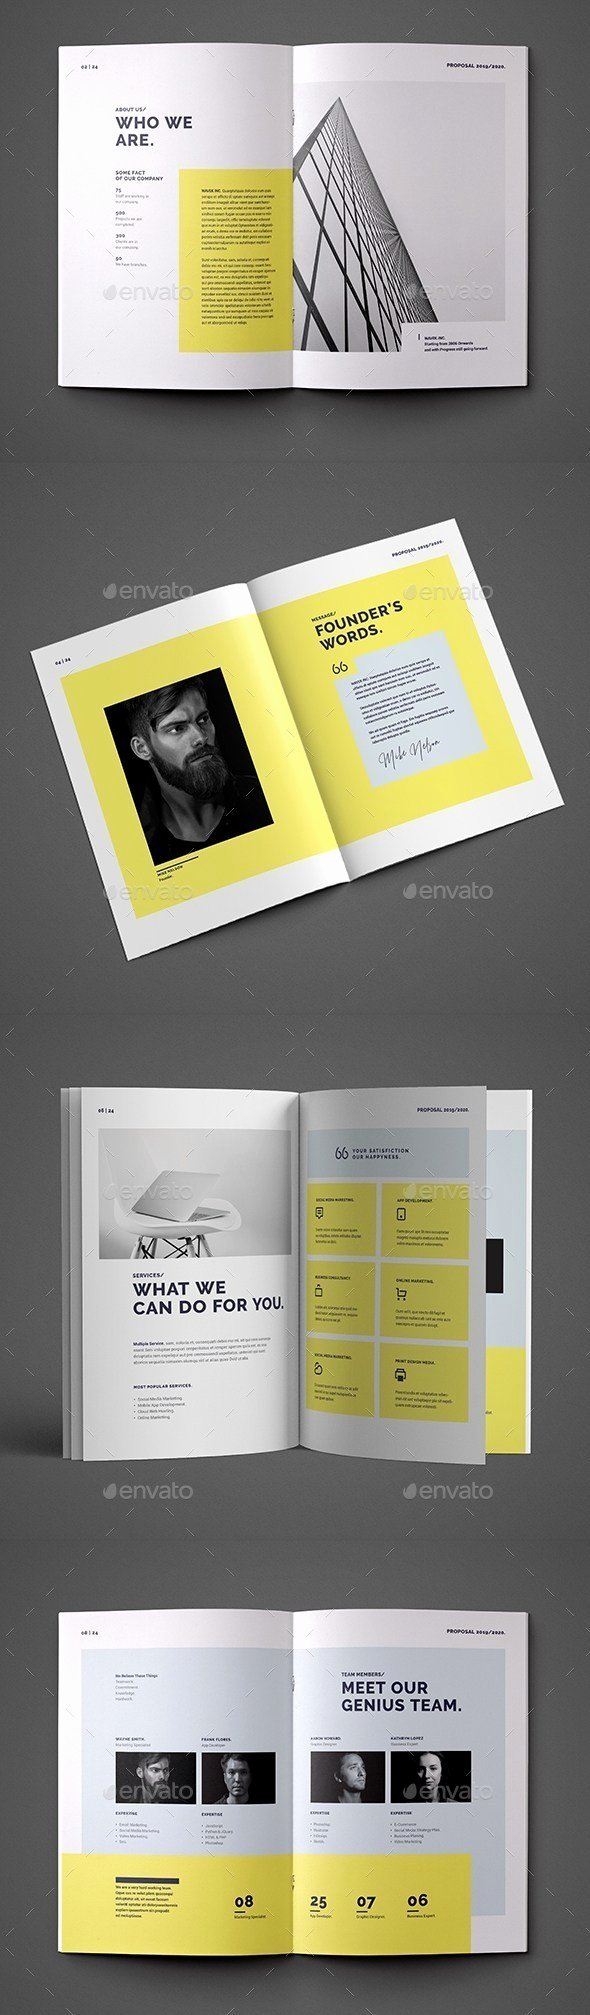 Indesign Business Plan Template Elegant 30 Indesign Business Proposal Templates